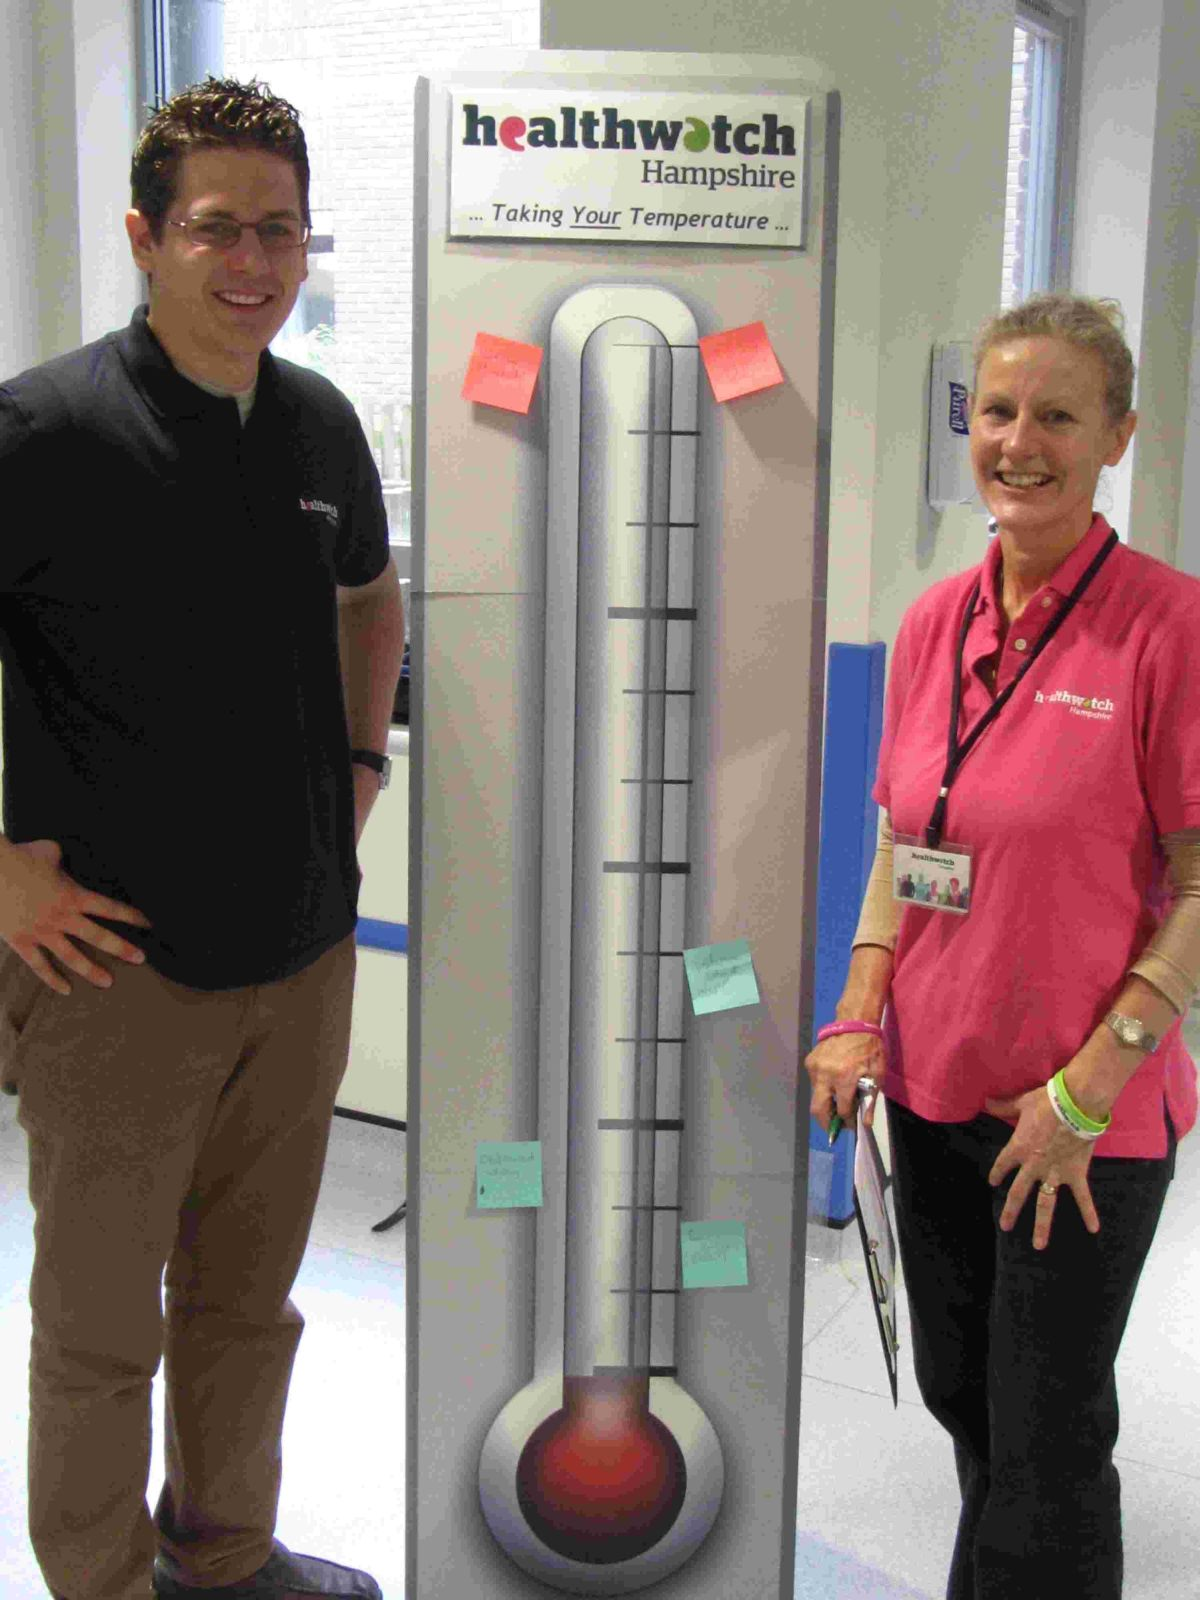 Steve Taylor, manager, with Sally Ann Wakeford, research officer